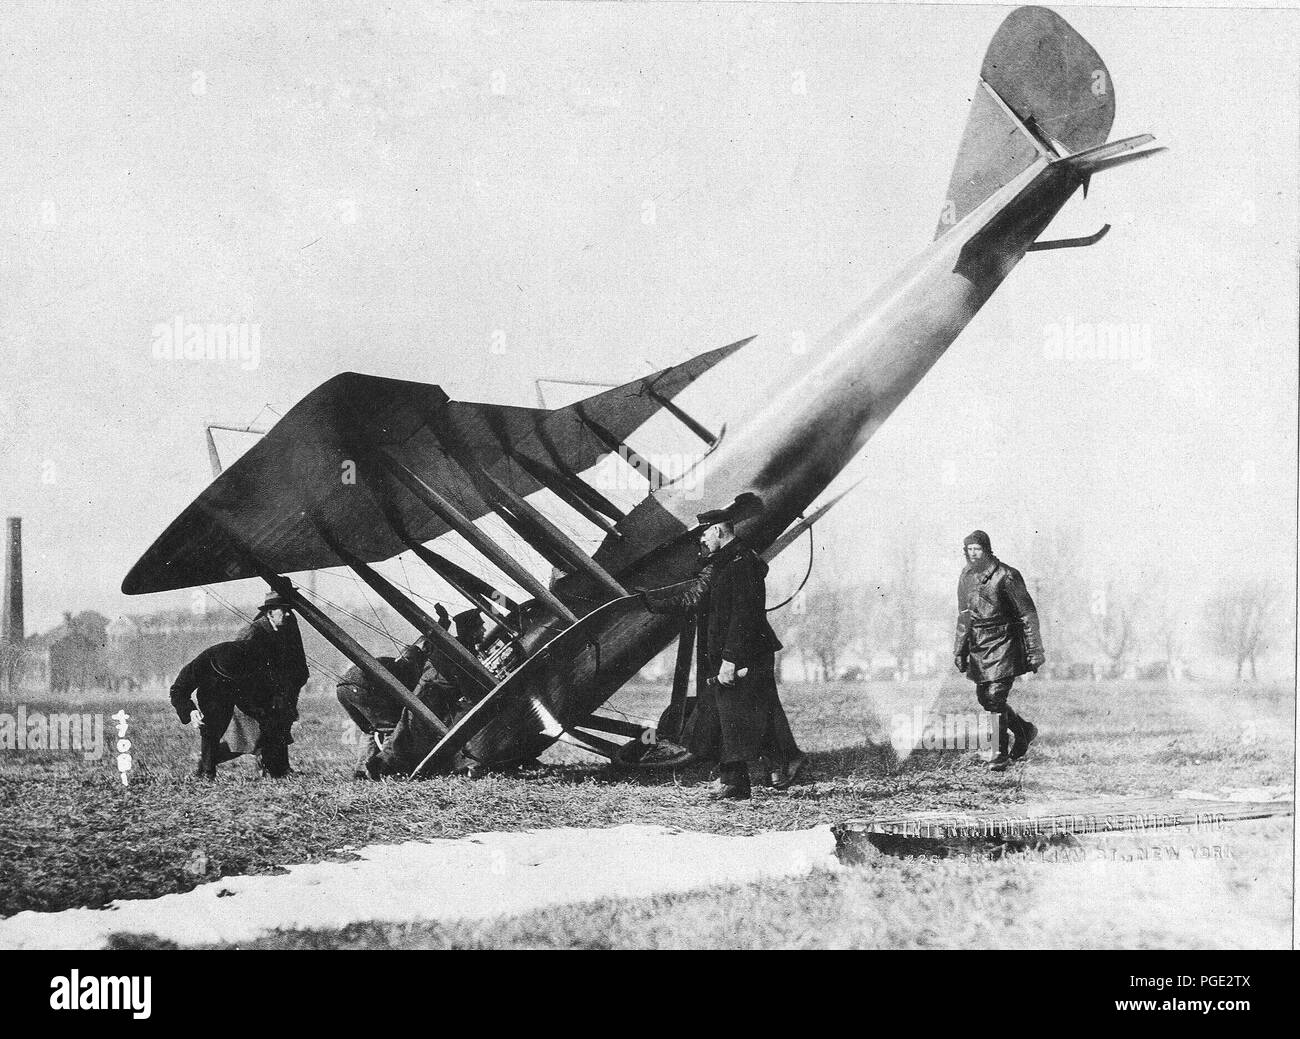 Airplanes - Accidents - Airplane Wrecks. Mineola, N.Y - Stock Image